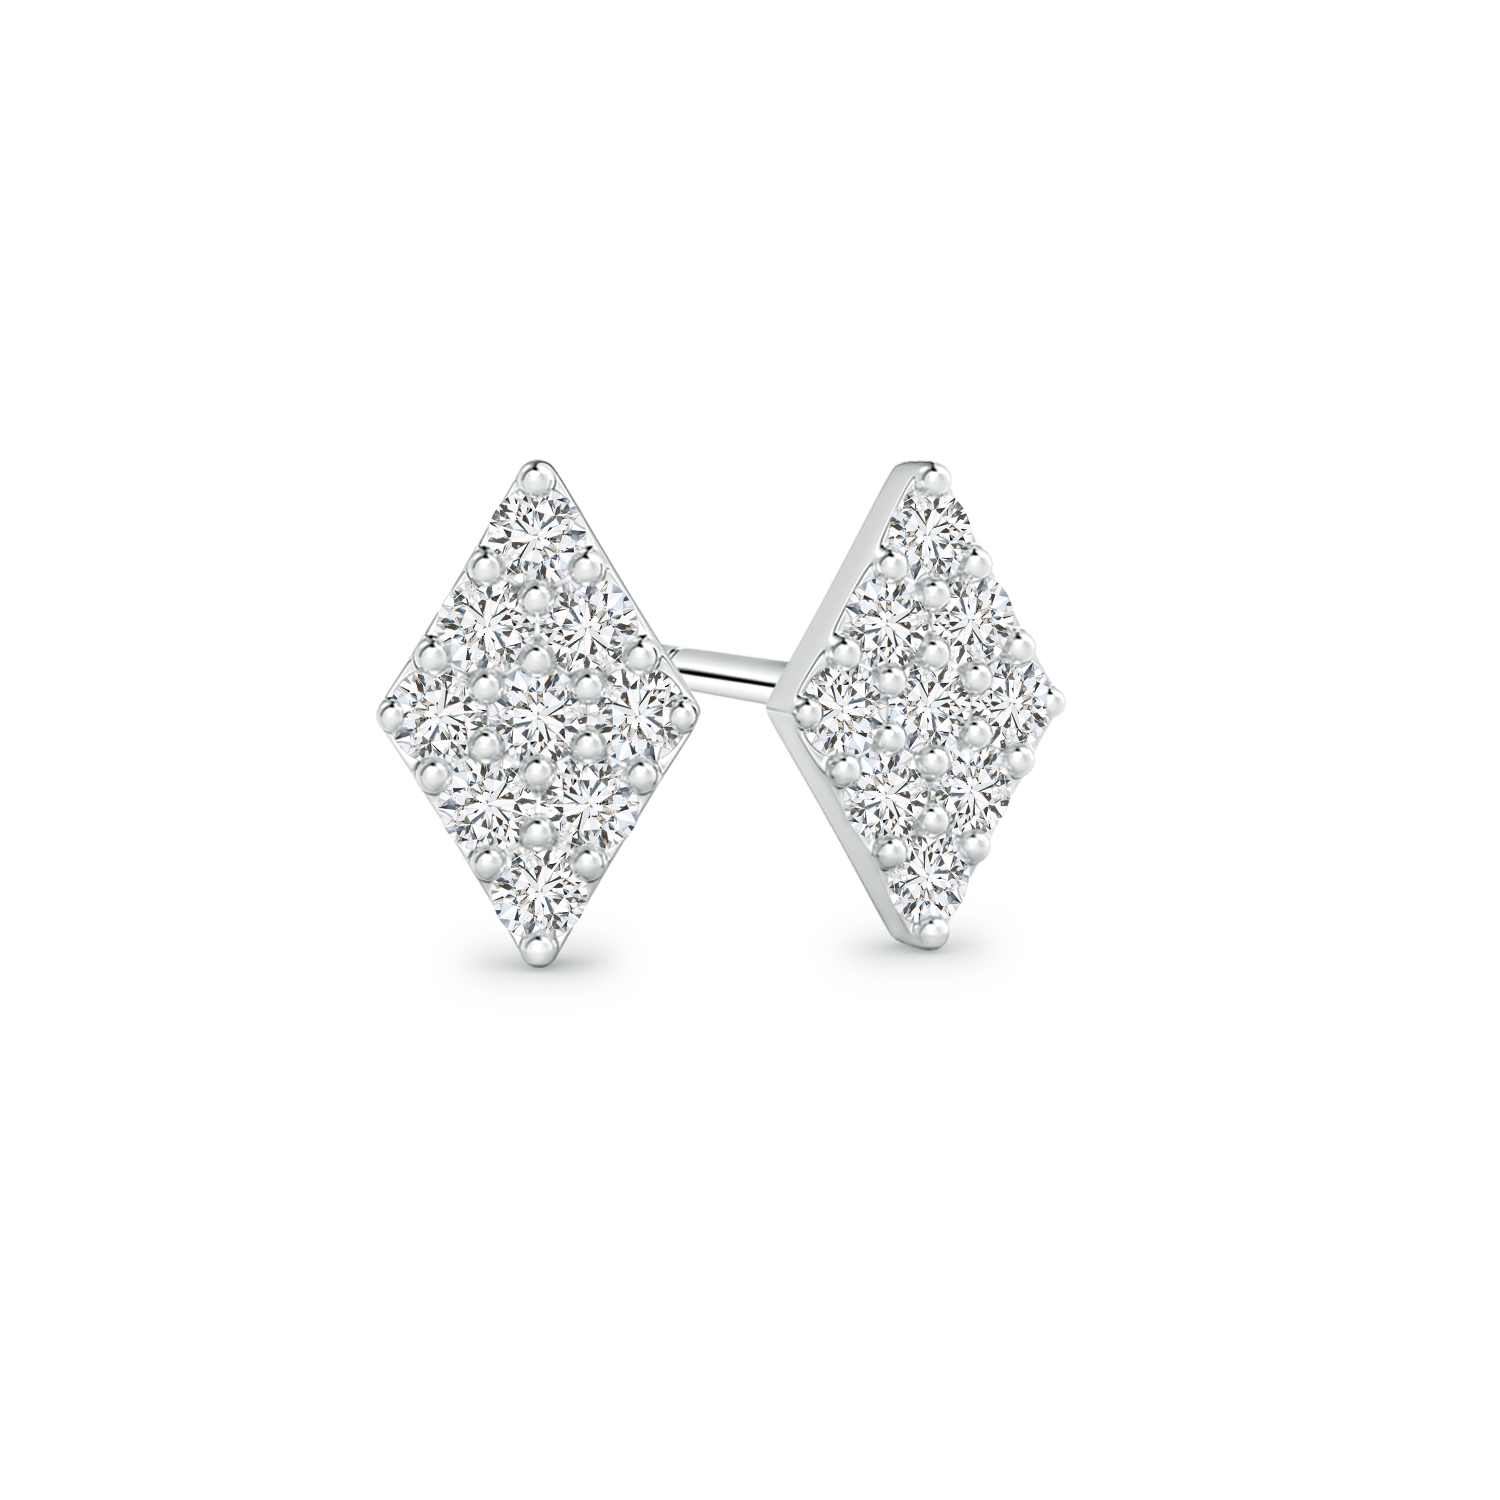 Composite Lab Grown Diamond Kite Shaped Stud Earrings - Main Image